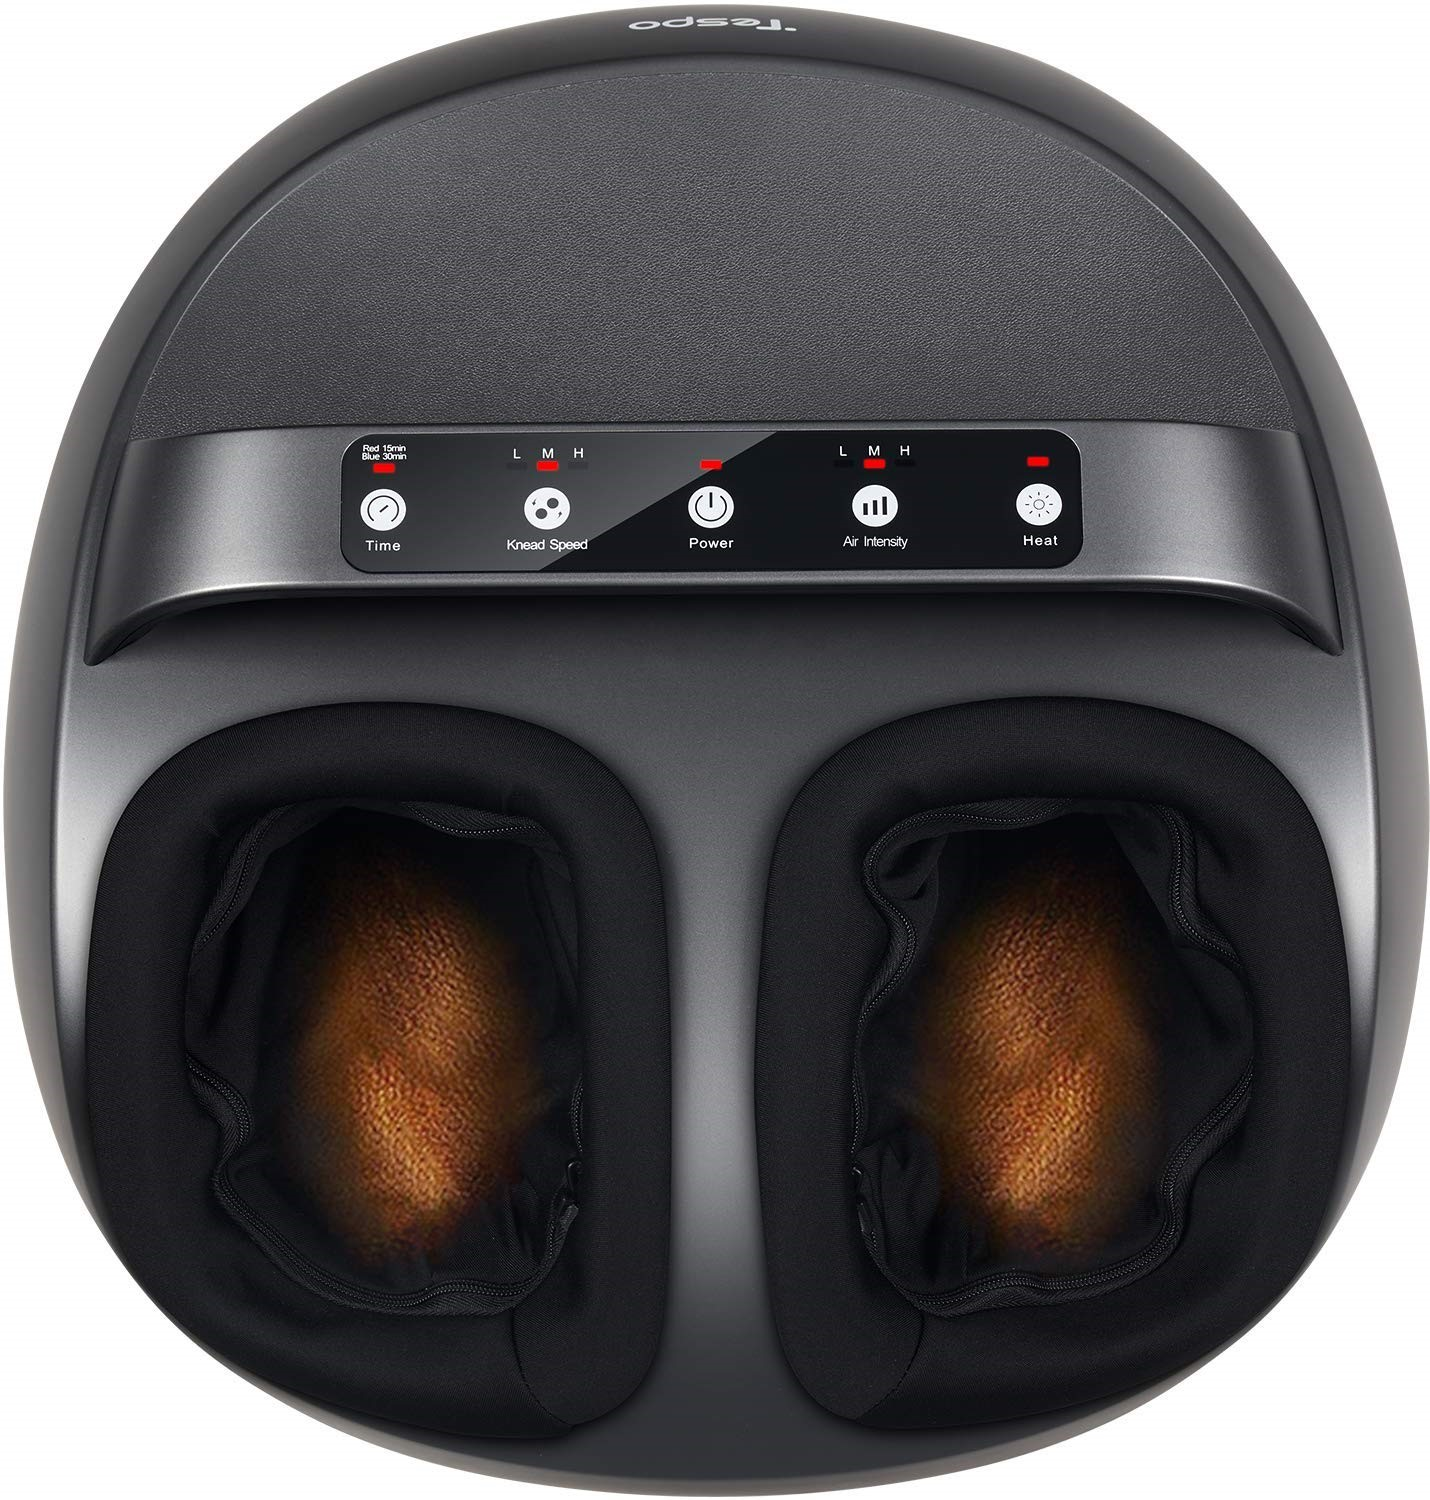 Top view of black, rounded machine with a row of buttons across the top and spaces to insert feet below.